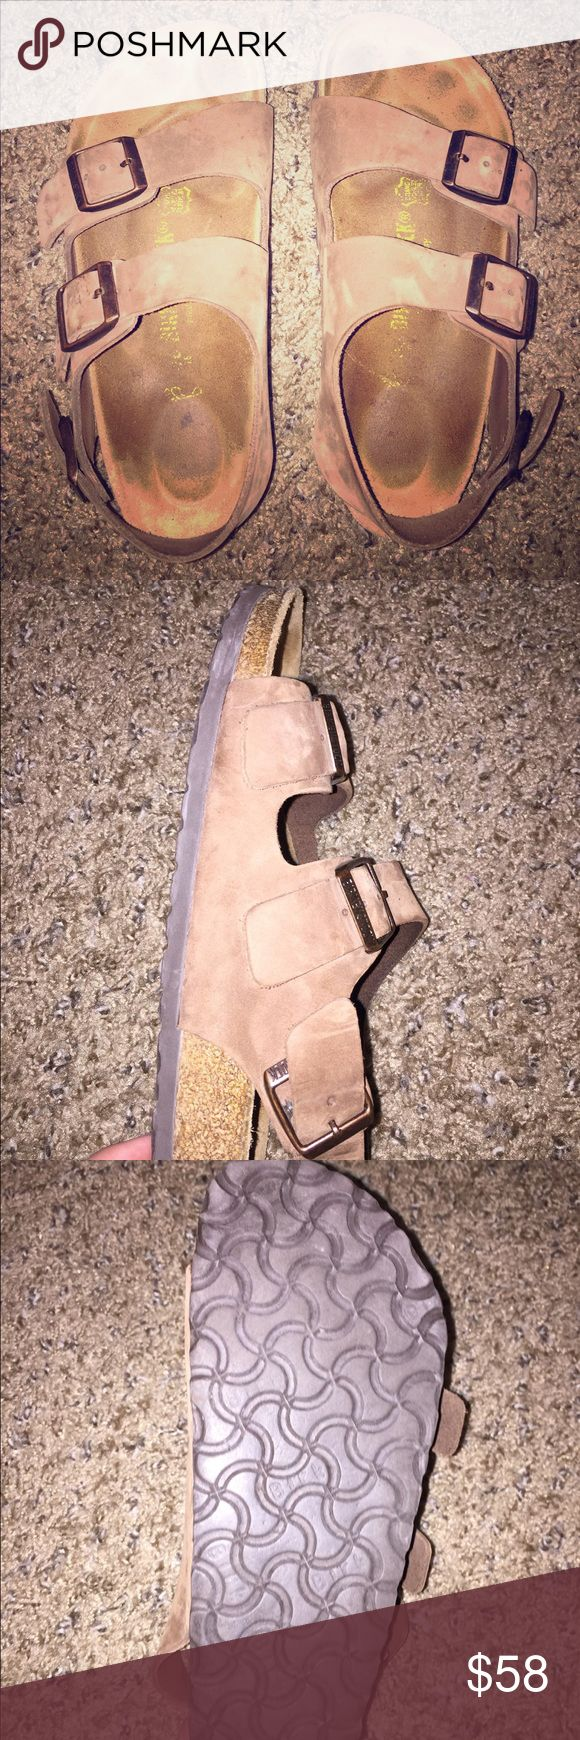 Birkenstocks Great condition! Only work with socks, no scuffs or stains! Birkenstock Shoes Sandals